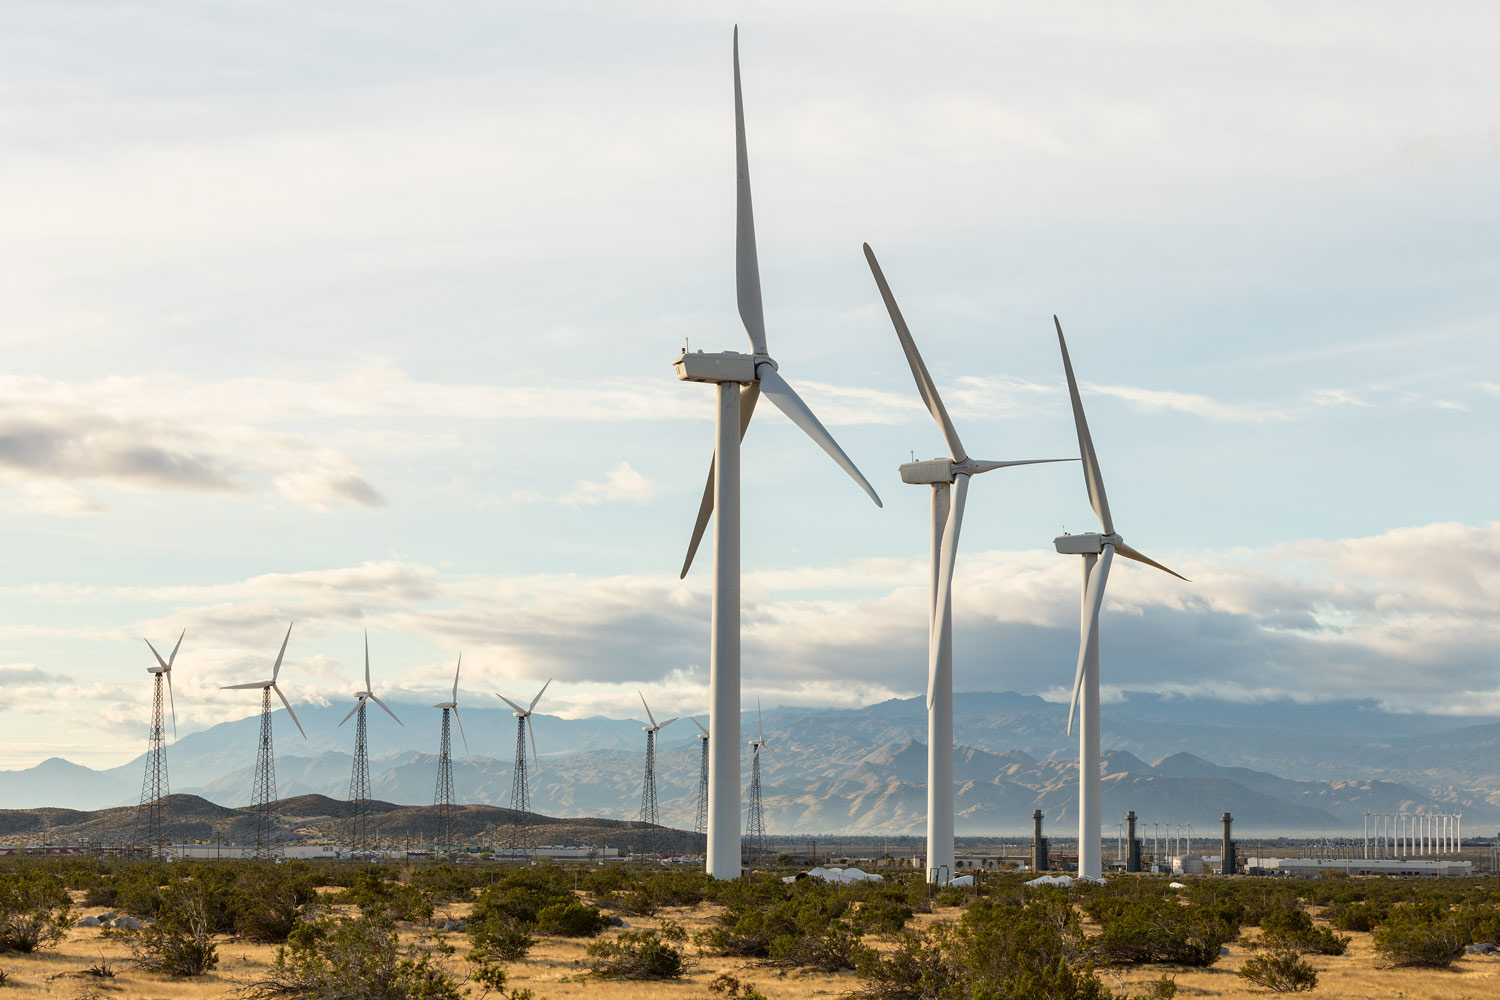 San Gorgonio Pass Wind Farm. Palm Springs, CA. Study #5